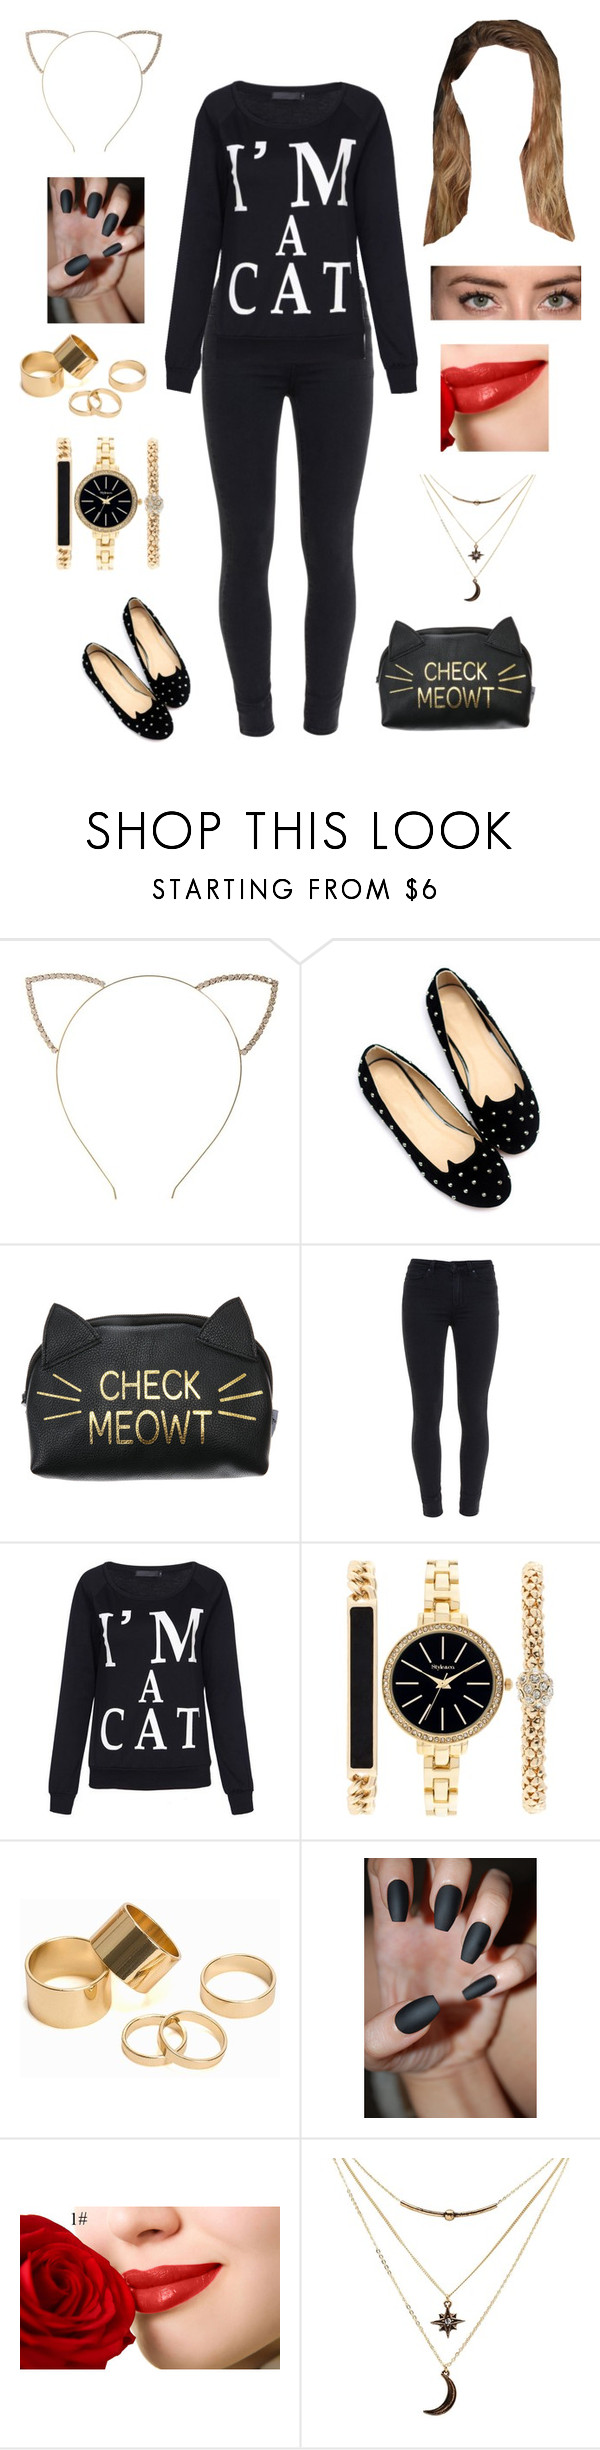 """""""Untitled #654"""" by cutiepie92343 on Polyvore featuring Cara, Paige Denim, Style & Co., Pieces and Charlotte Russe"""